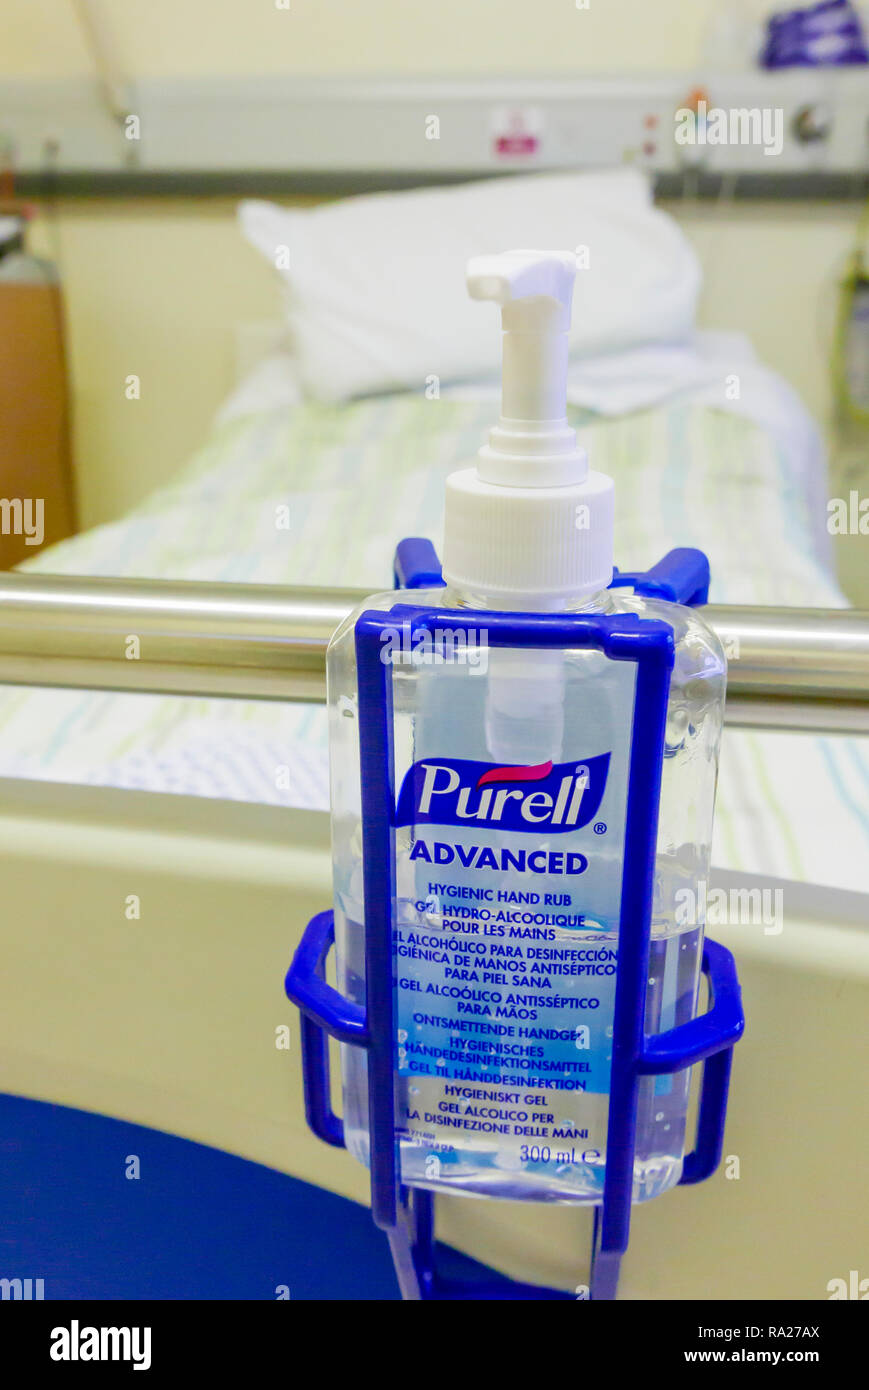 Bottle of Purell Advanced alcohol hygienic hand rub at the end of a hospital bed. - Stock Image